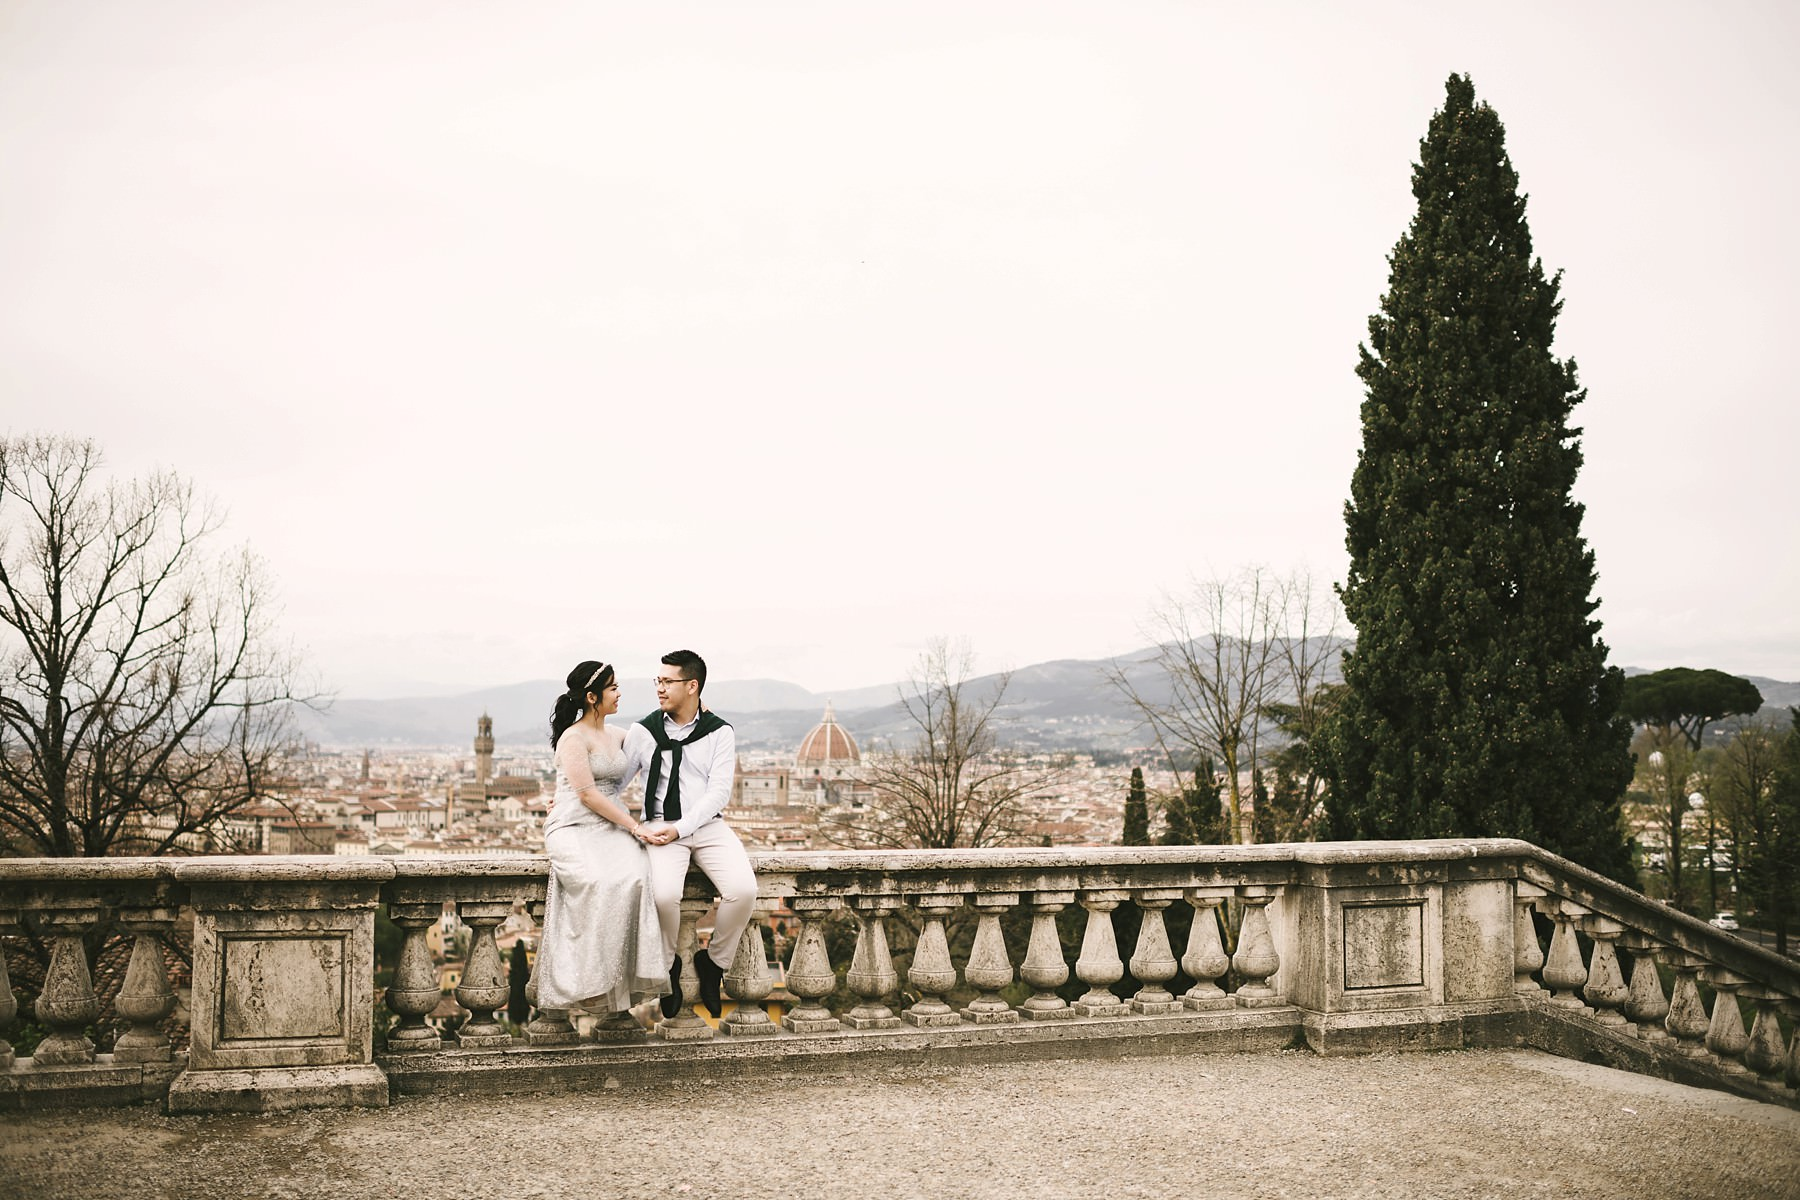 Lovely couple recently engaged. Florence couple portrait photo shoot at San Miniato al Monte near Piazzale Michelangelo